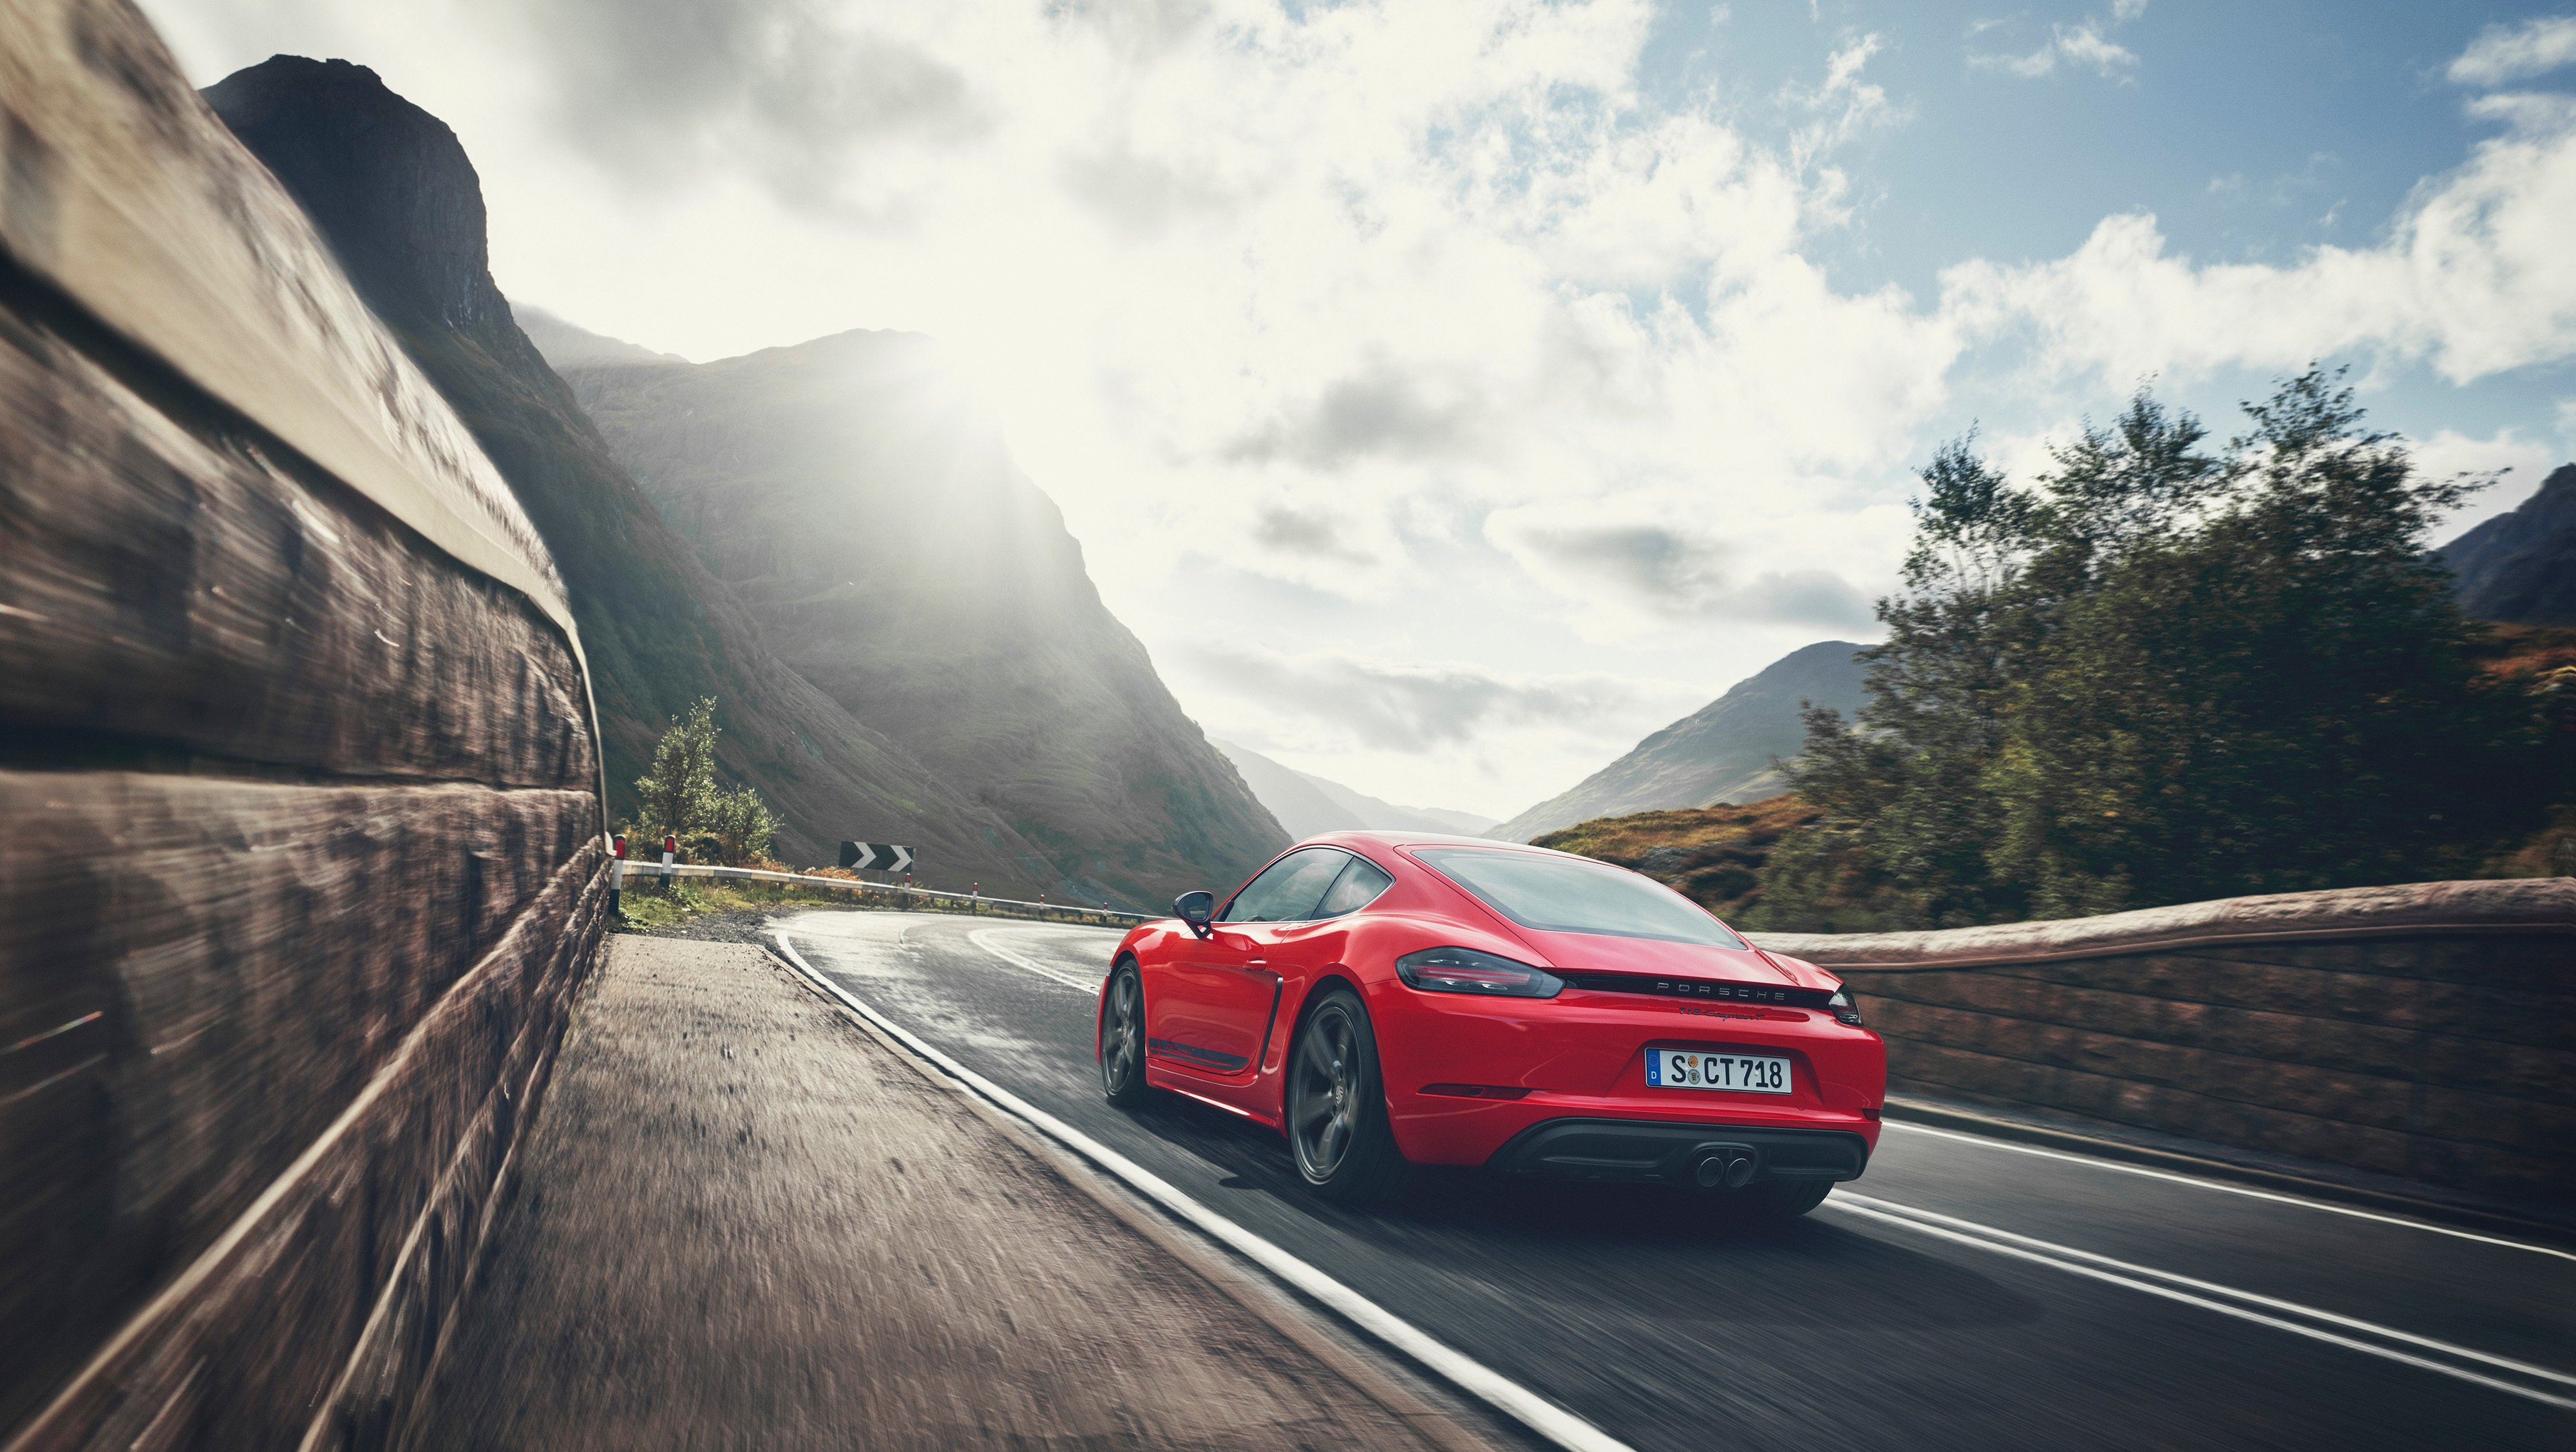 If You Like To Keep It Simple The 2019 Porsche 718 Cayman T Or 718